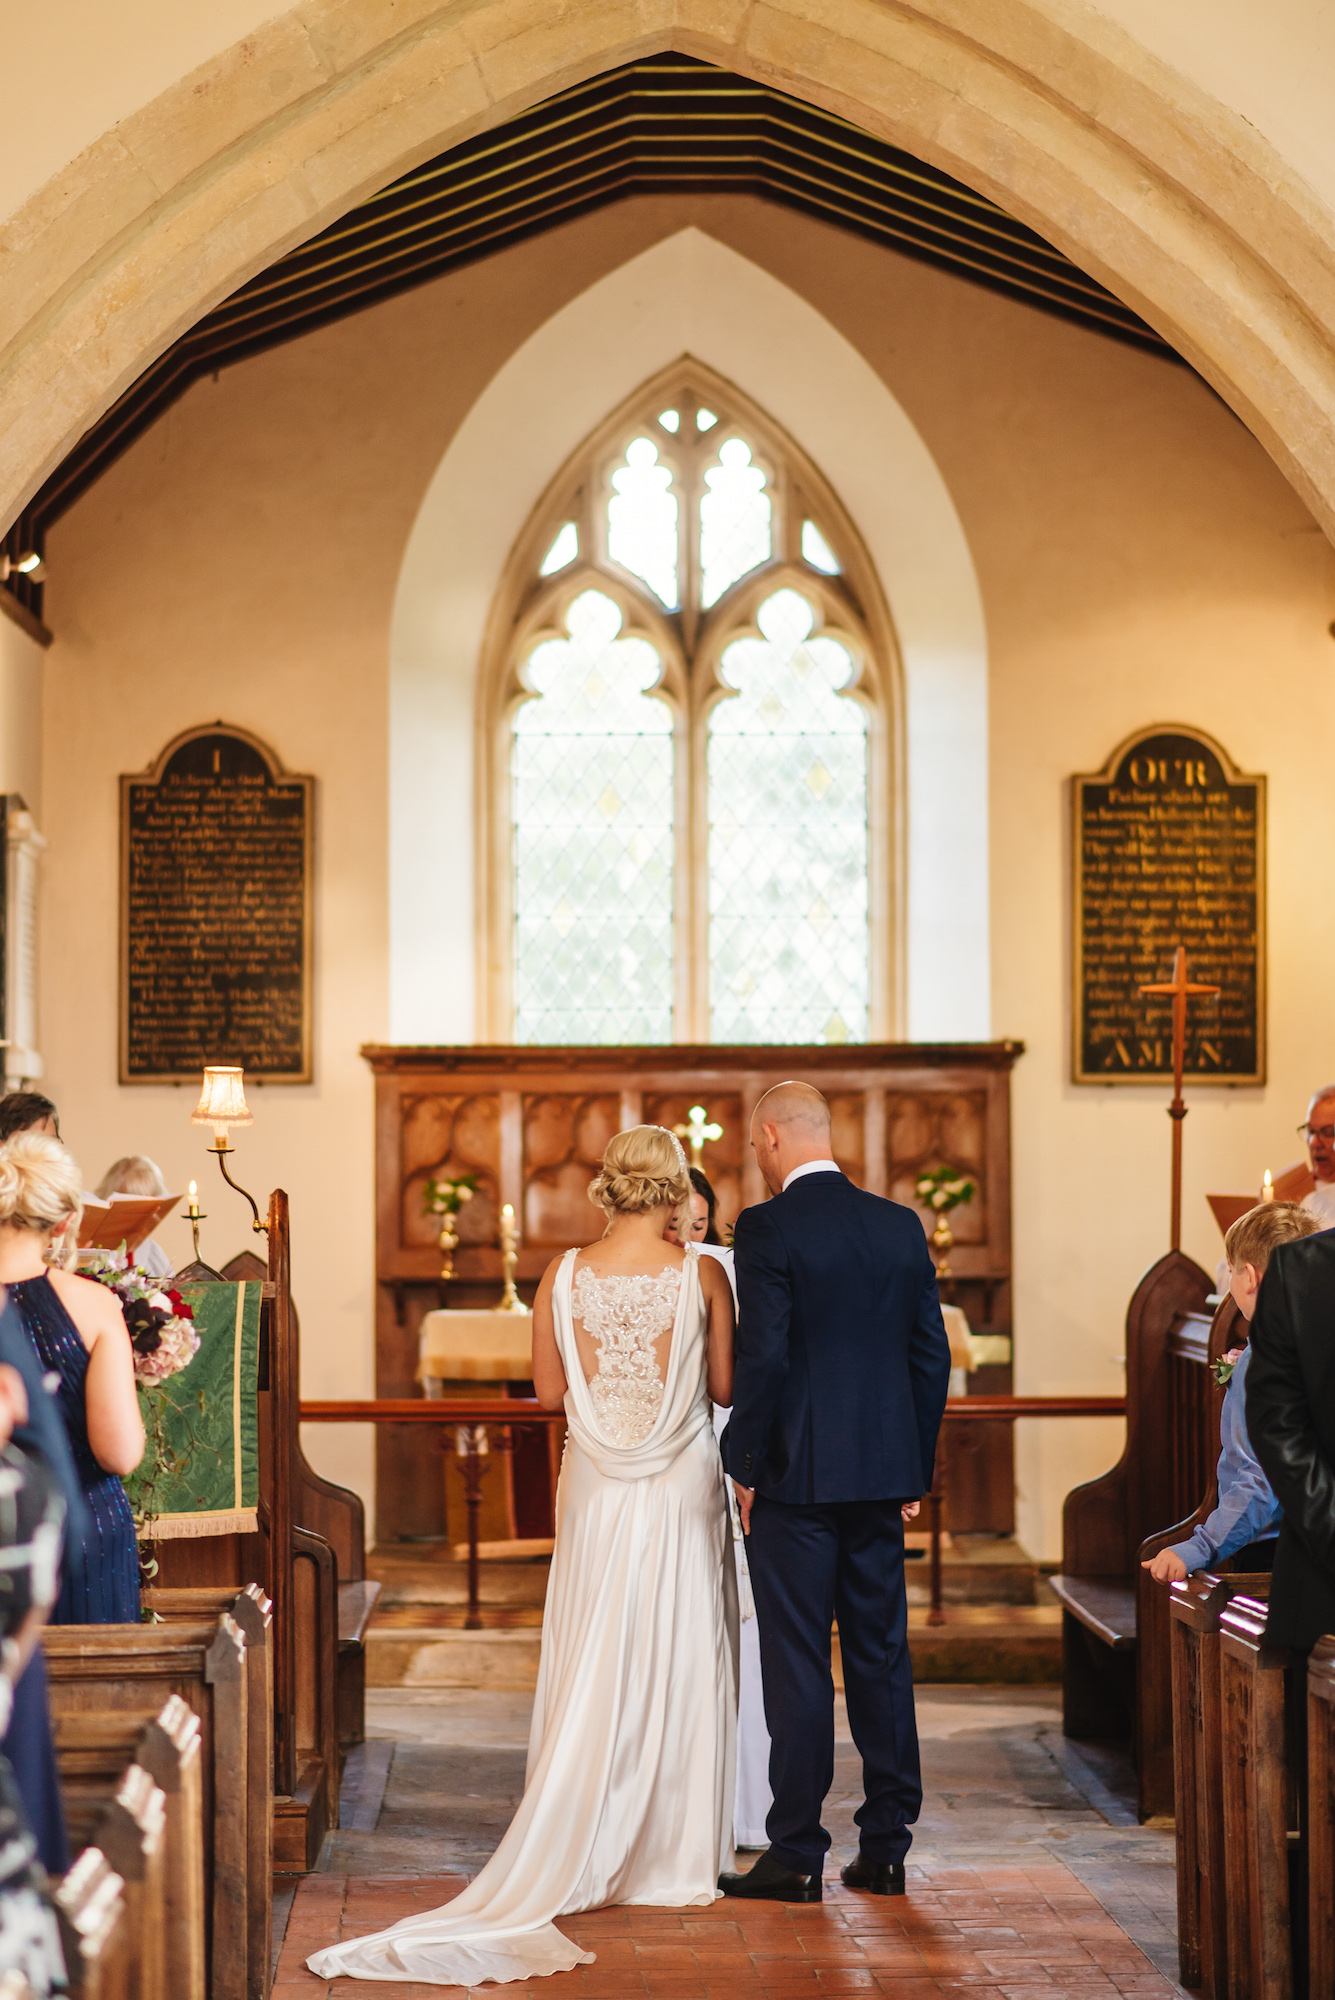 05_Rushall_manor_wiltshire_wedding_photography_bride_groom_church.jpg